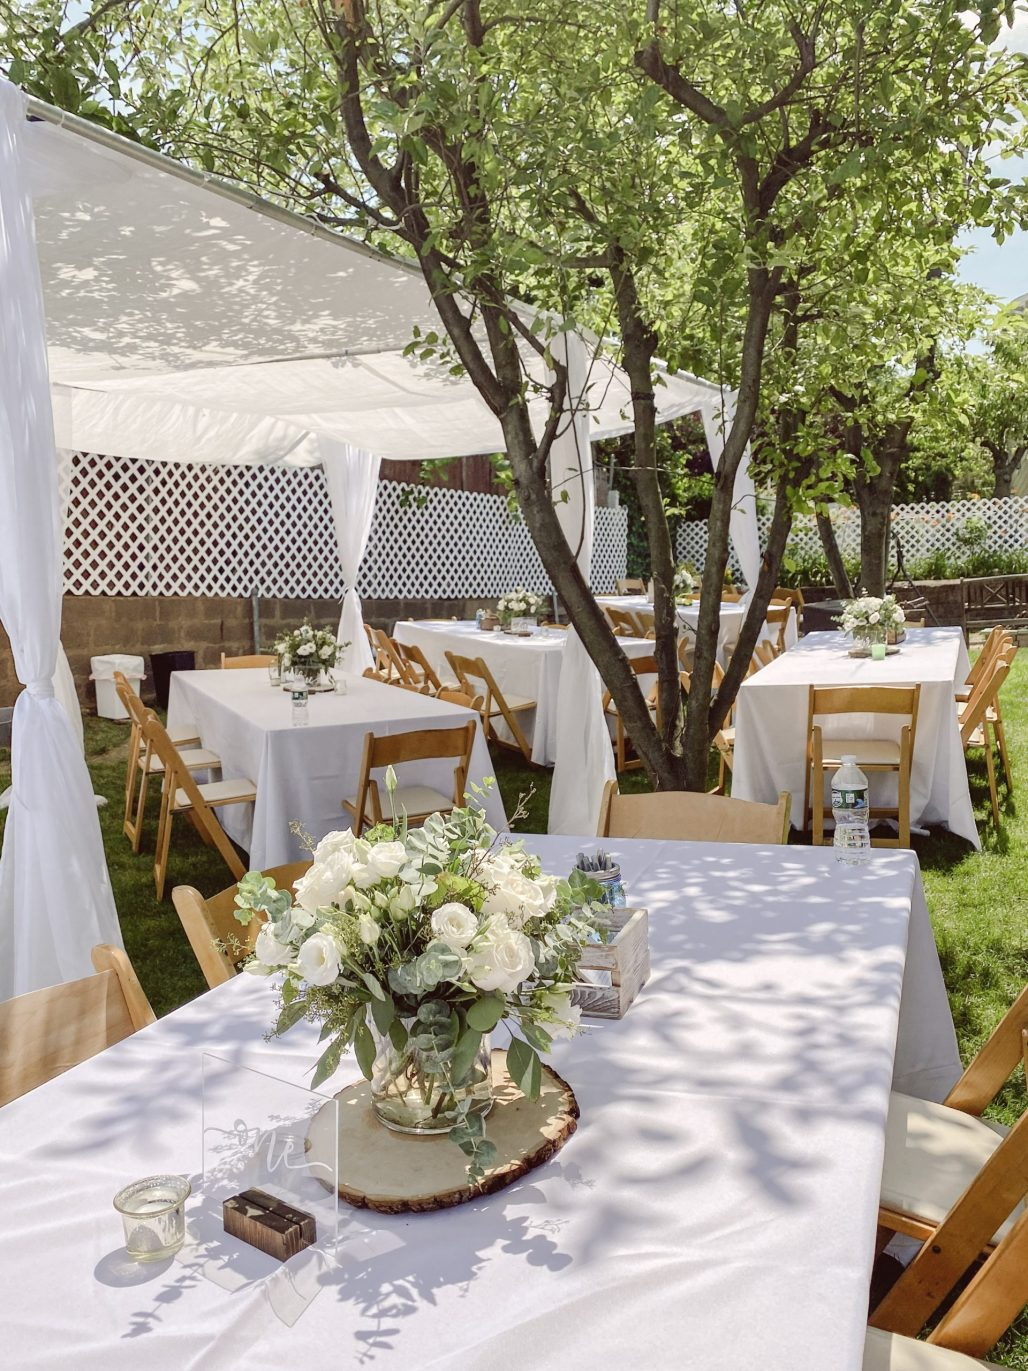 How to Have a Safe Outdoor Party at Home during Covid-19    Dreamery Events